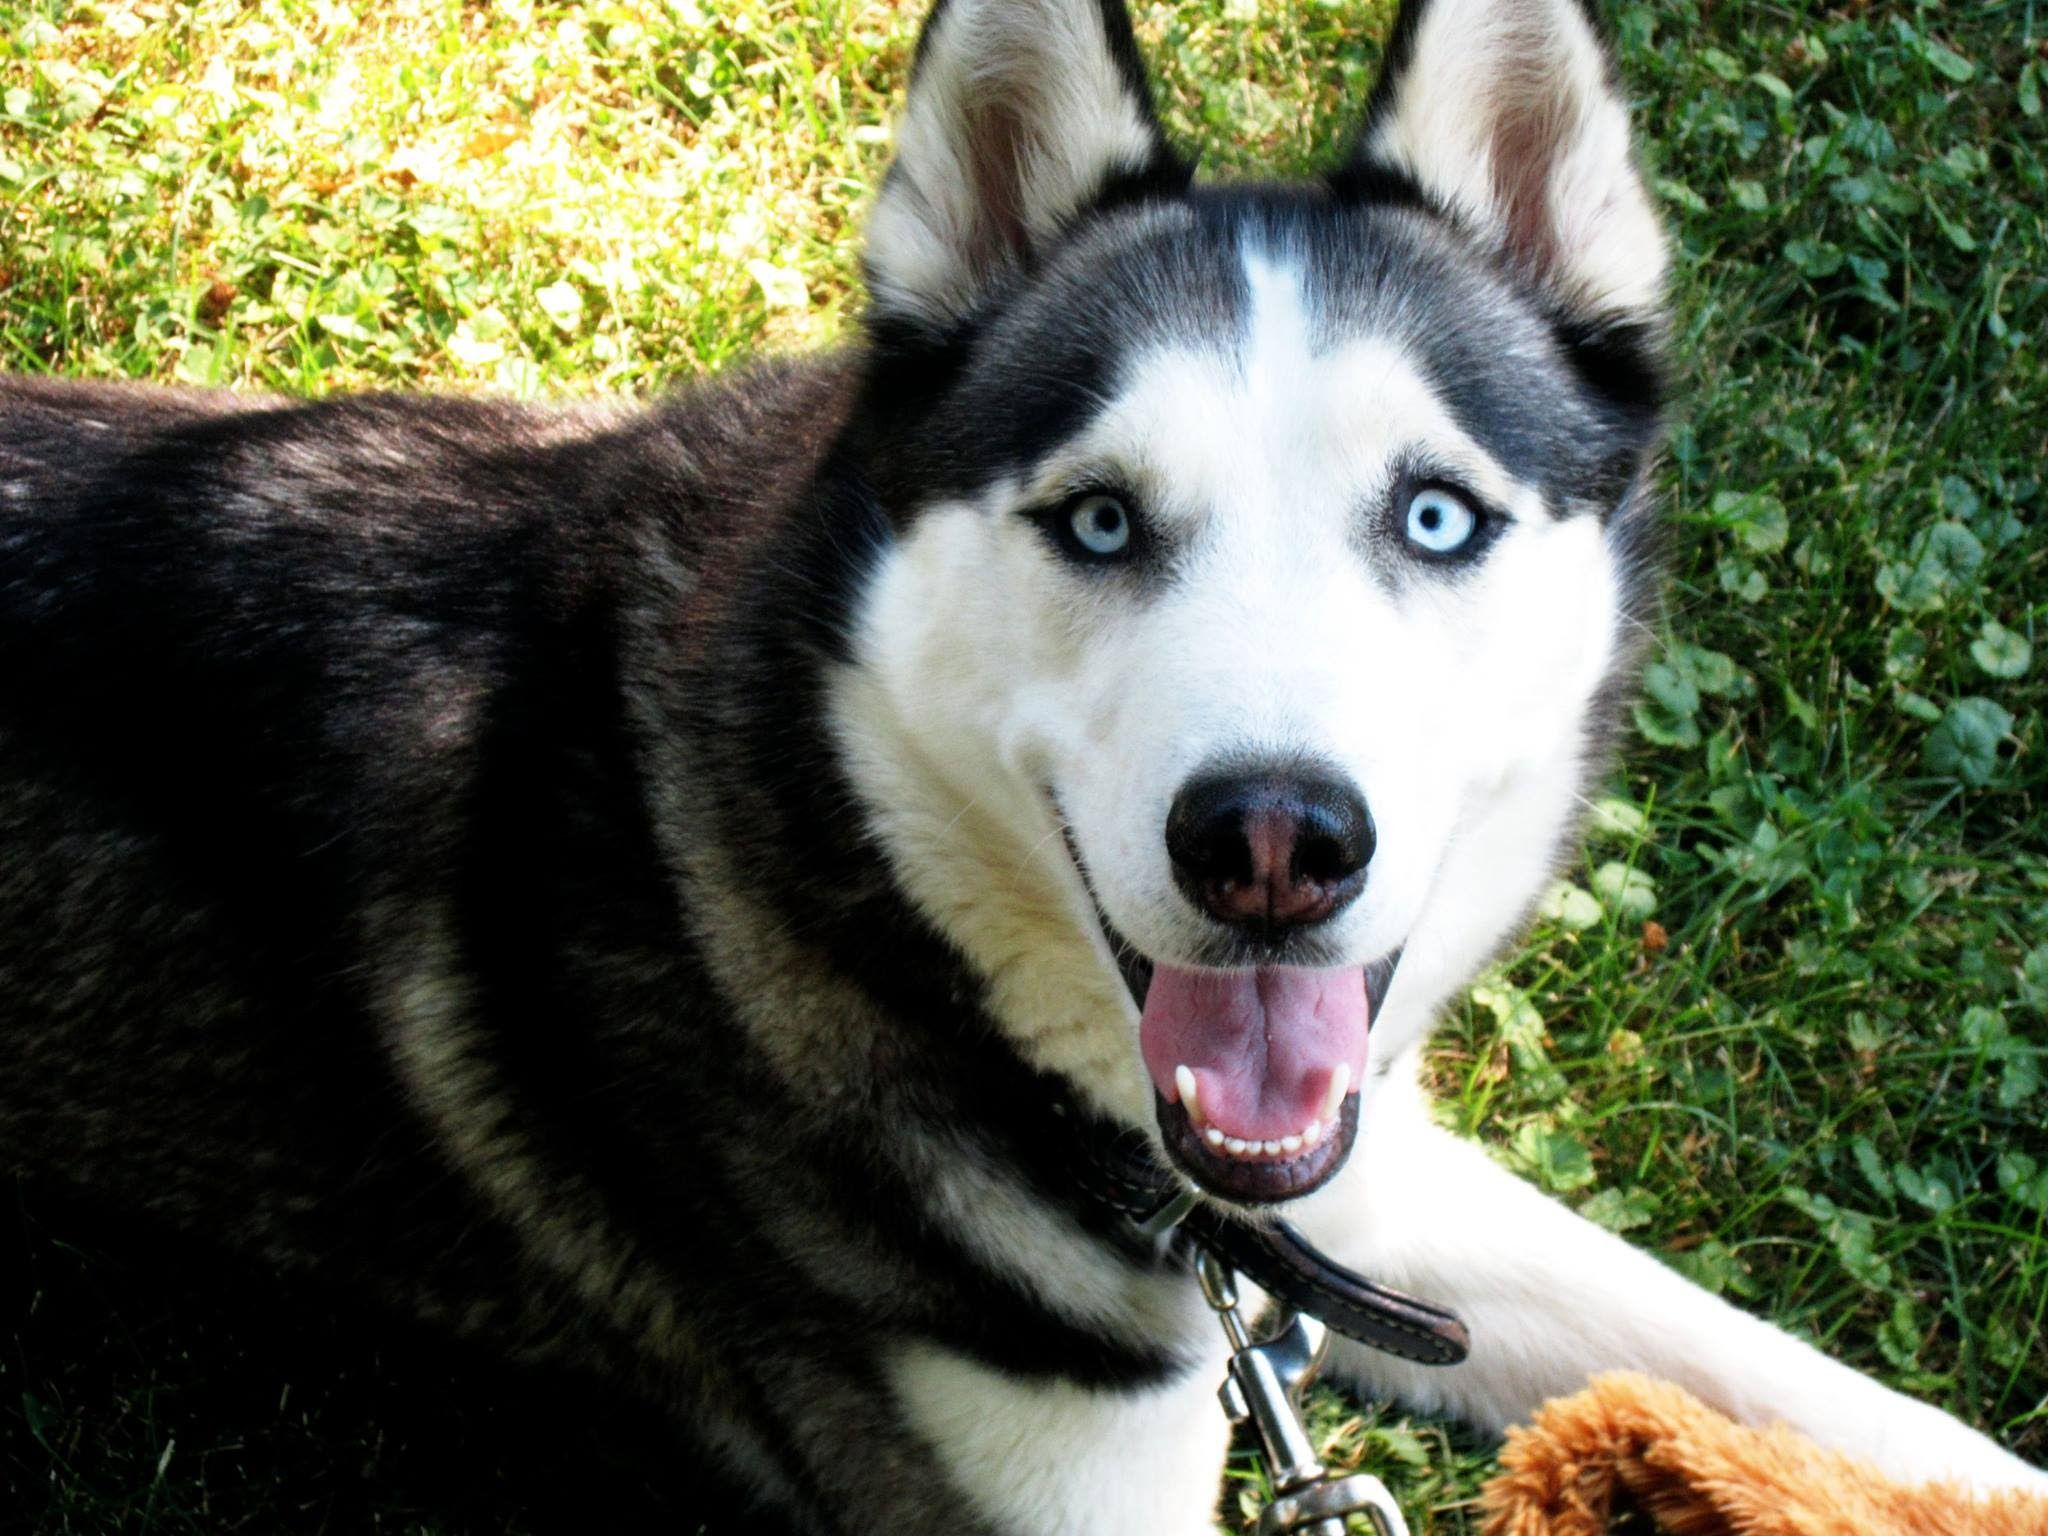 Husky puppies moving in pregnant mothers belly smile files husky puppies moving in pregnant mothers belly nvjuhfo Choice Image